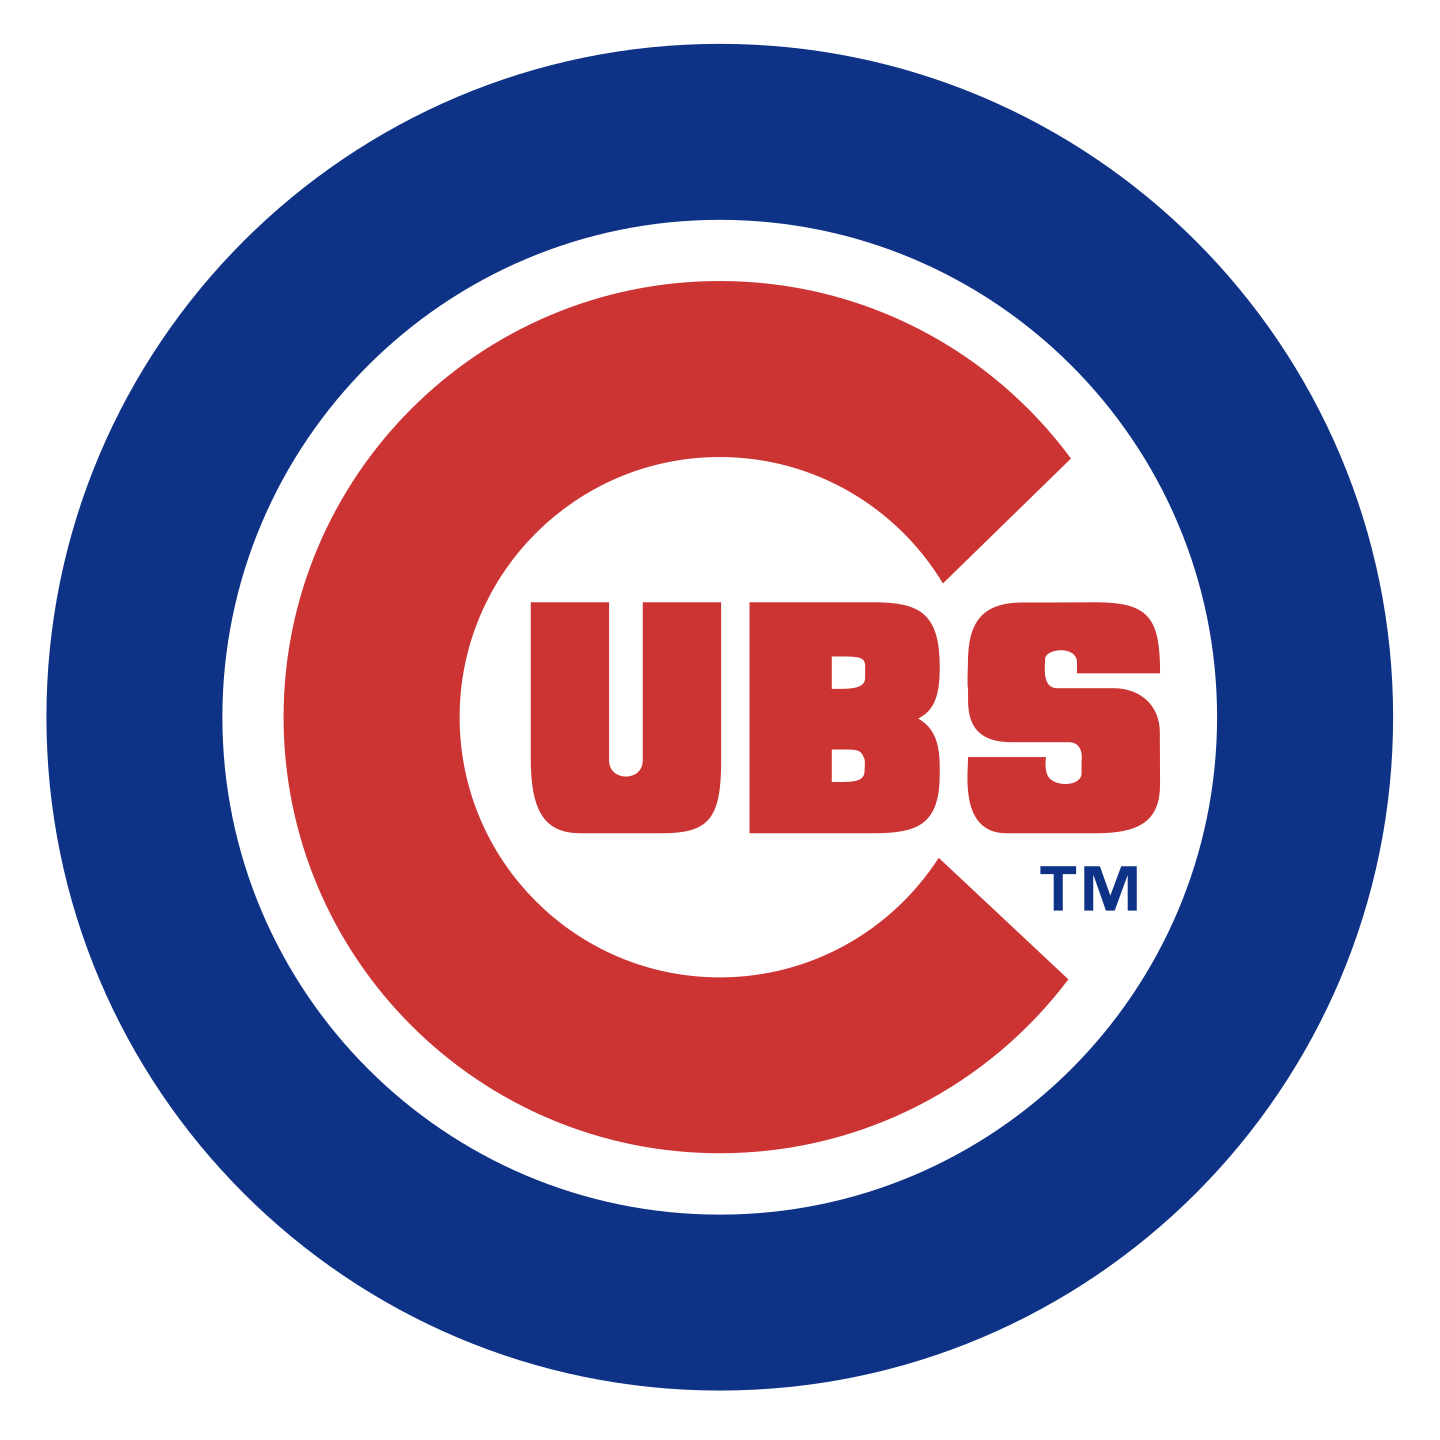 chicago cubs logo 2 - Chicago Cubs Logo